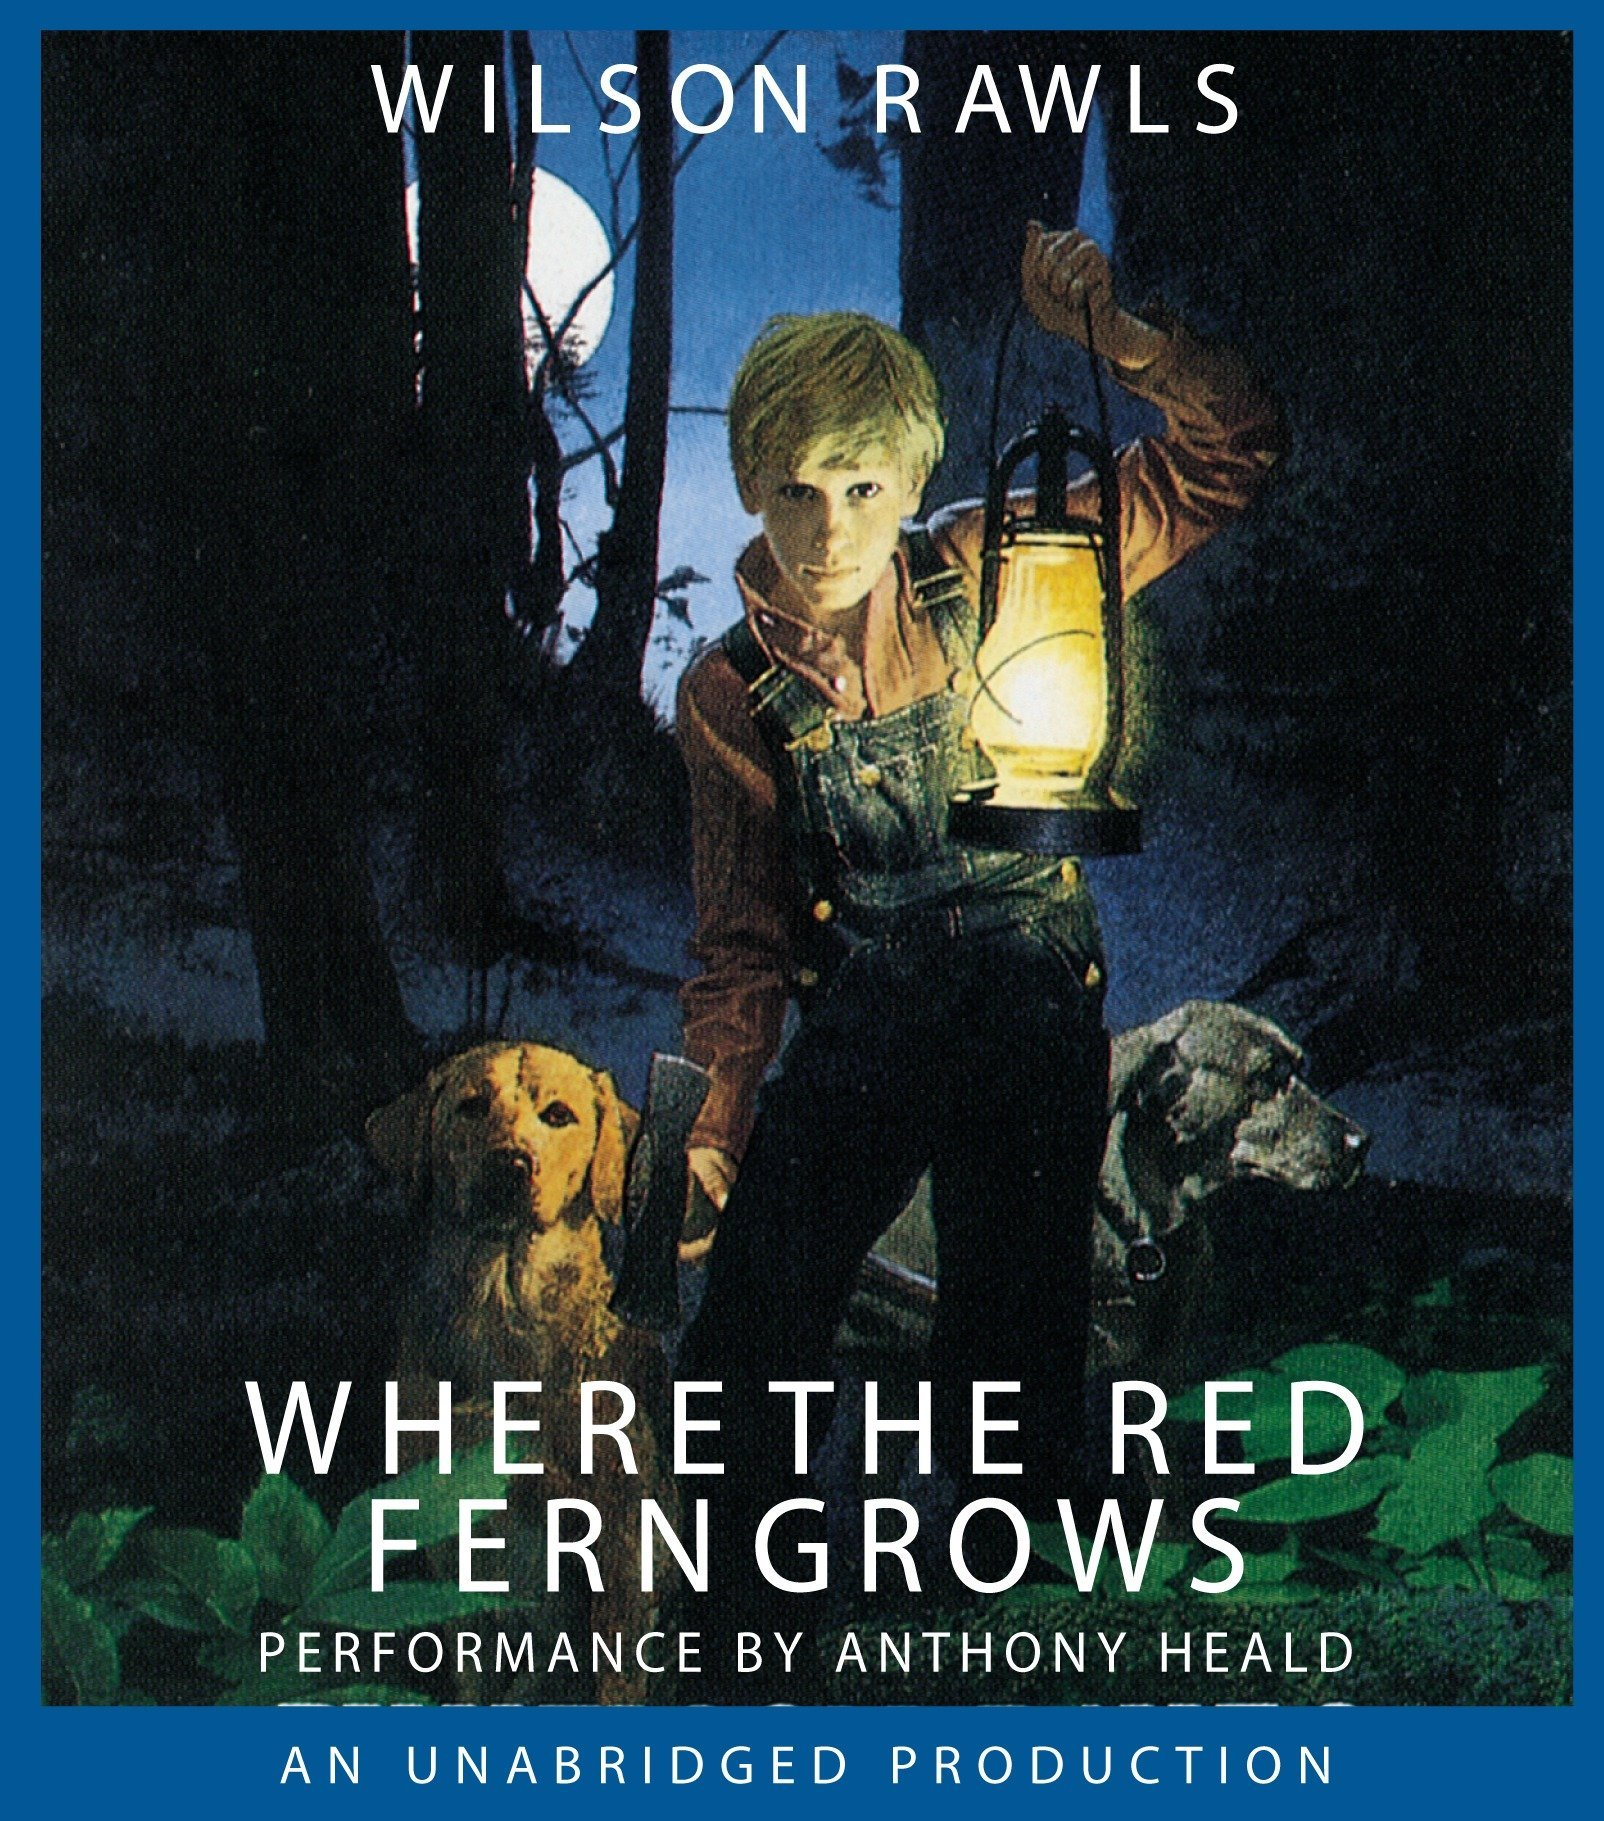 Amazon.com: Where the Red Fern Grows (9780307281692): Wilson Rawls, Anthony  Heald: Books